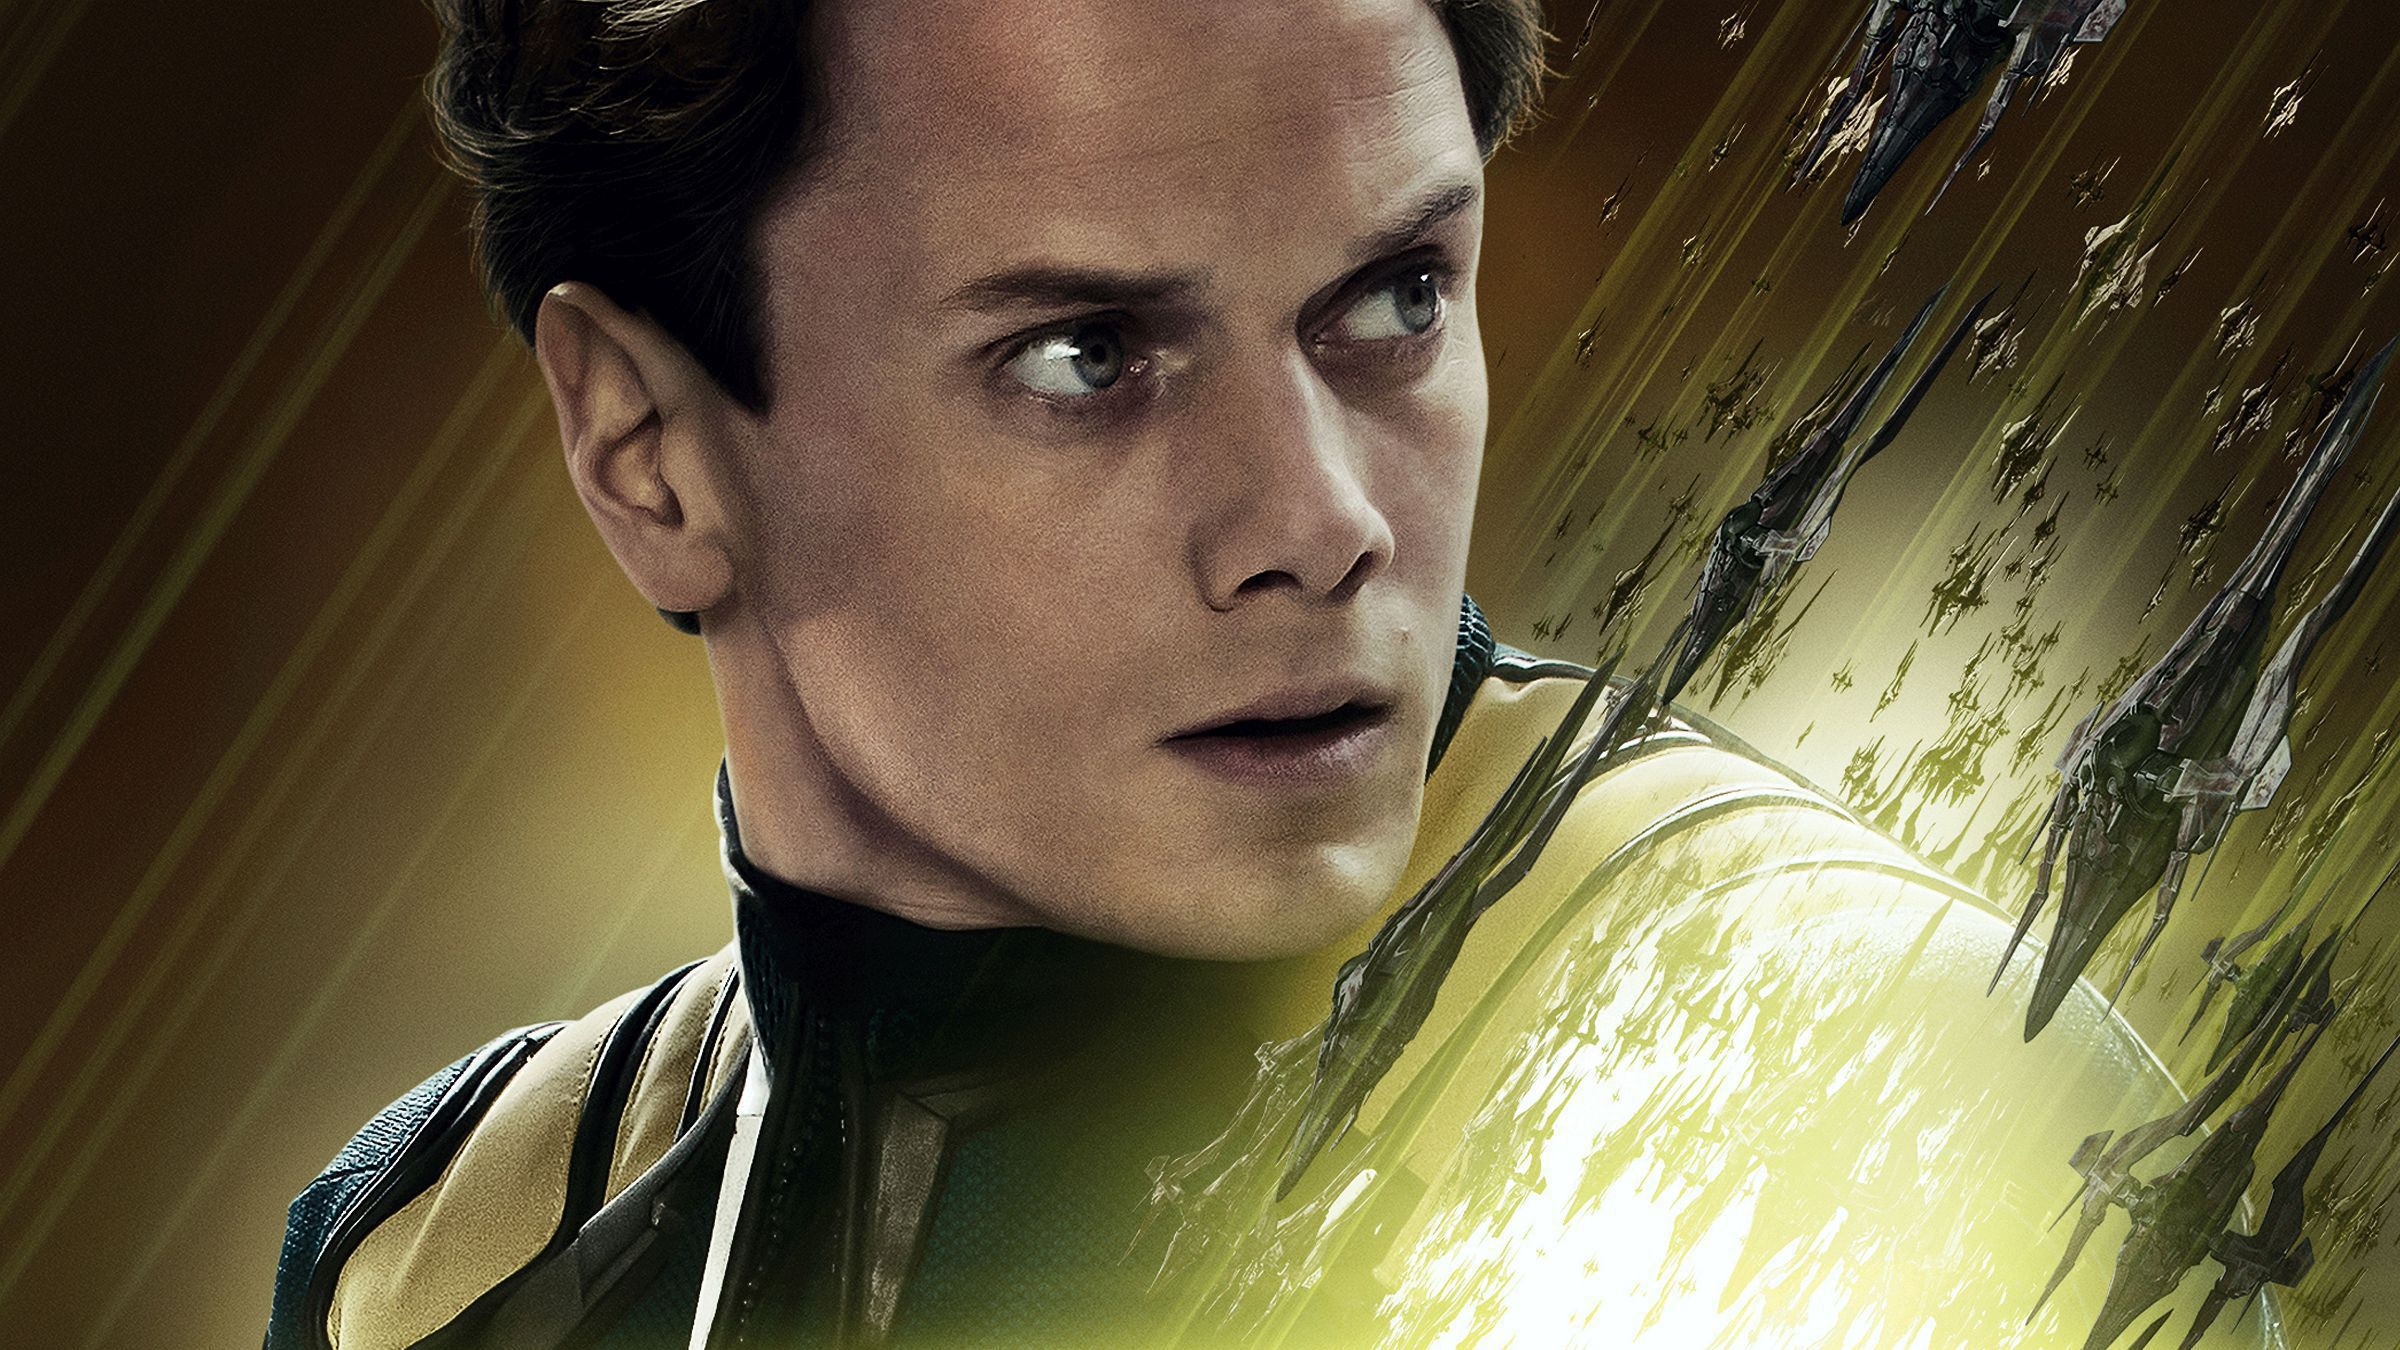 Anton Yelchin Wallpaper Pack